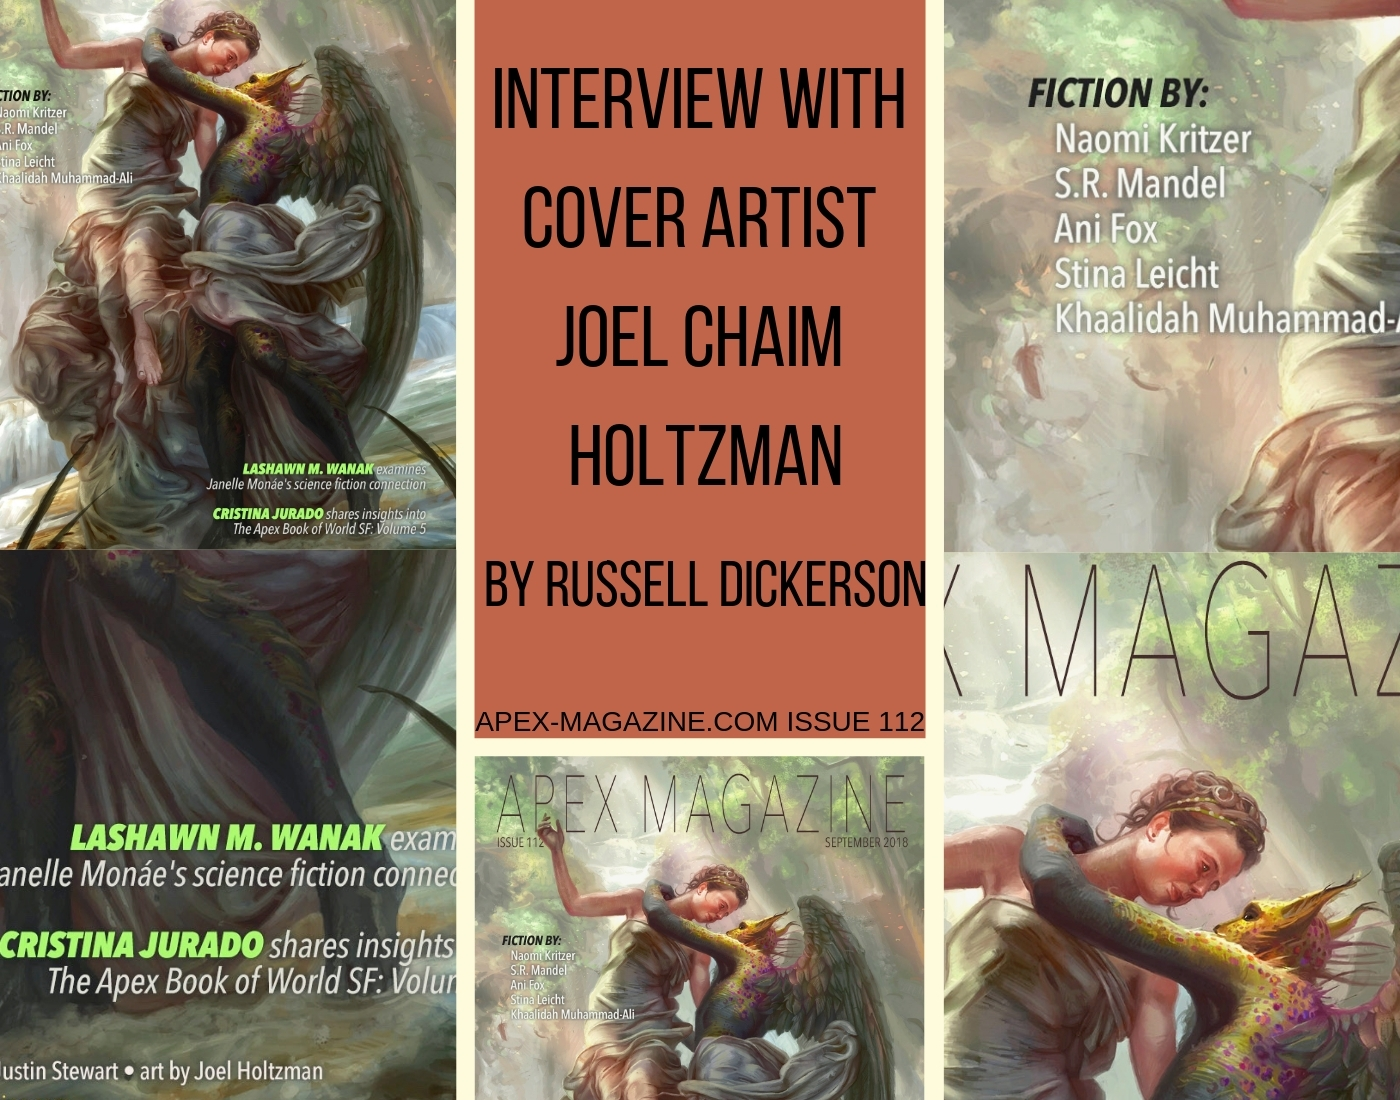 Interview with Cover Artist Joel Chaim Holtzman